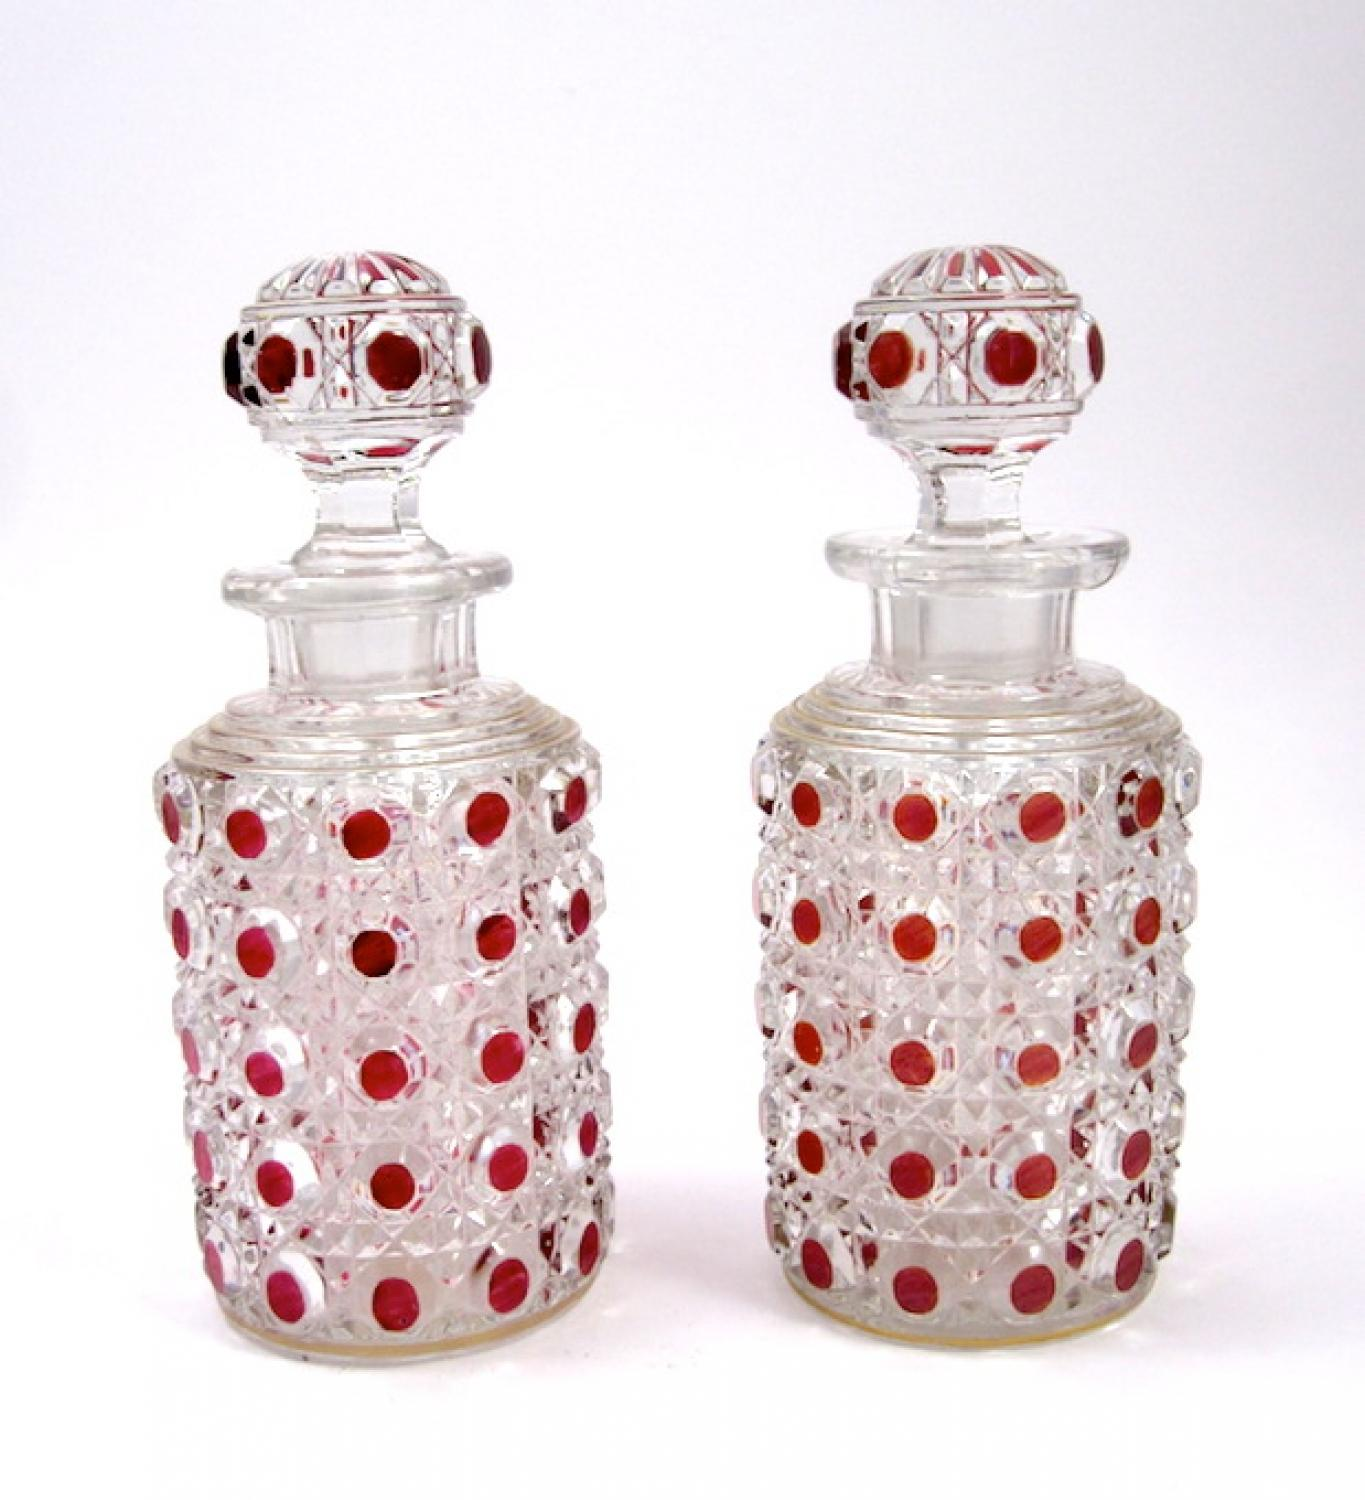 Antique Pair of Baccarat Scent Bottles